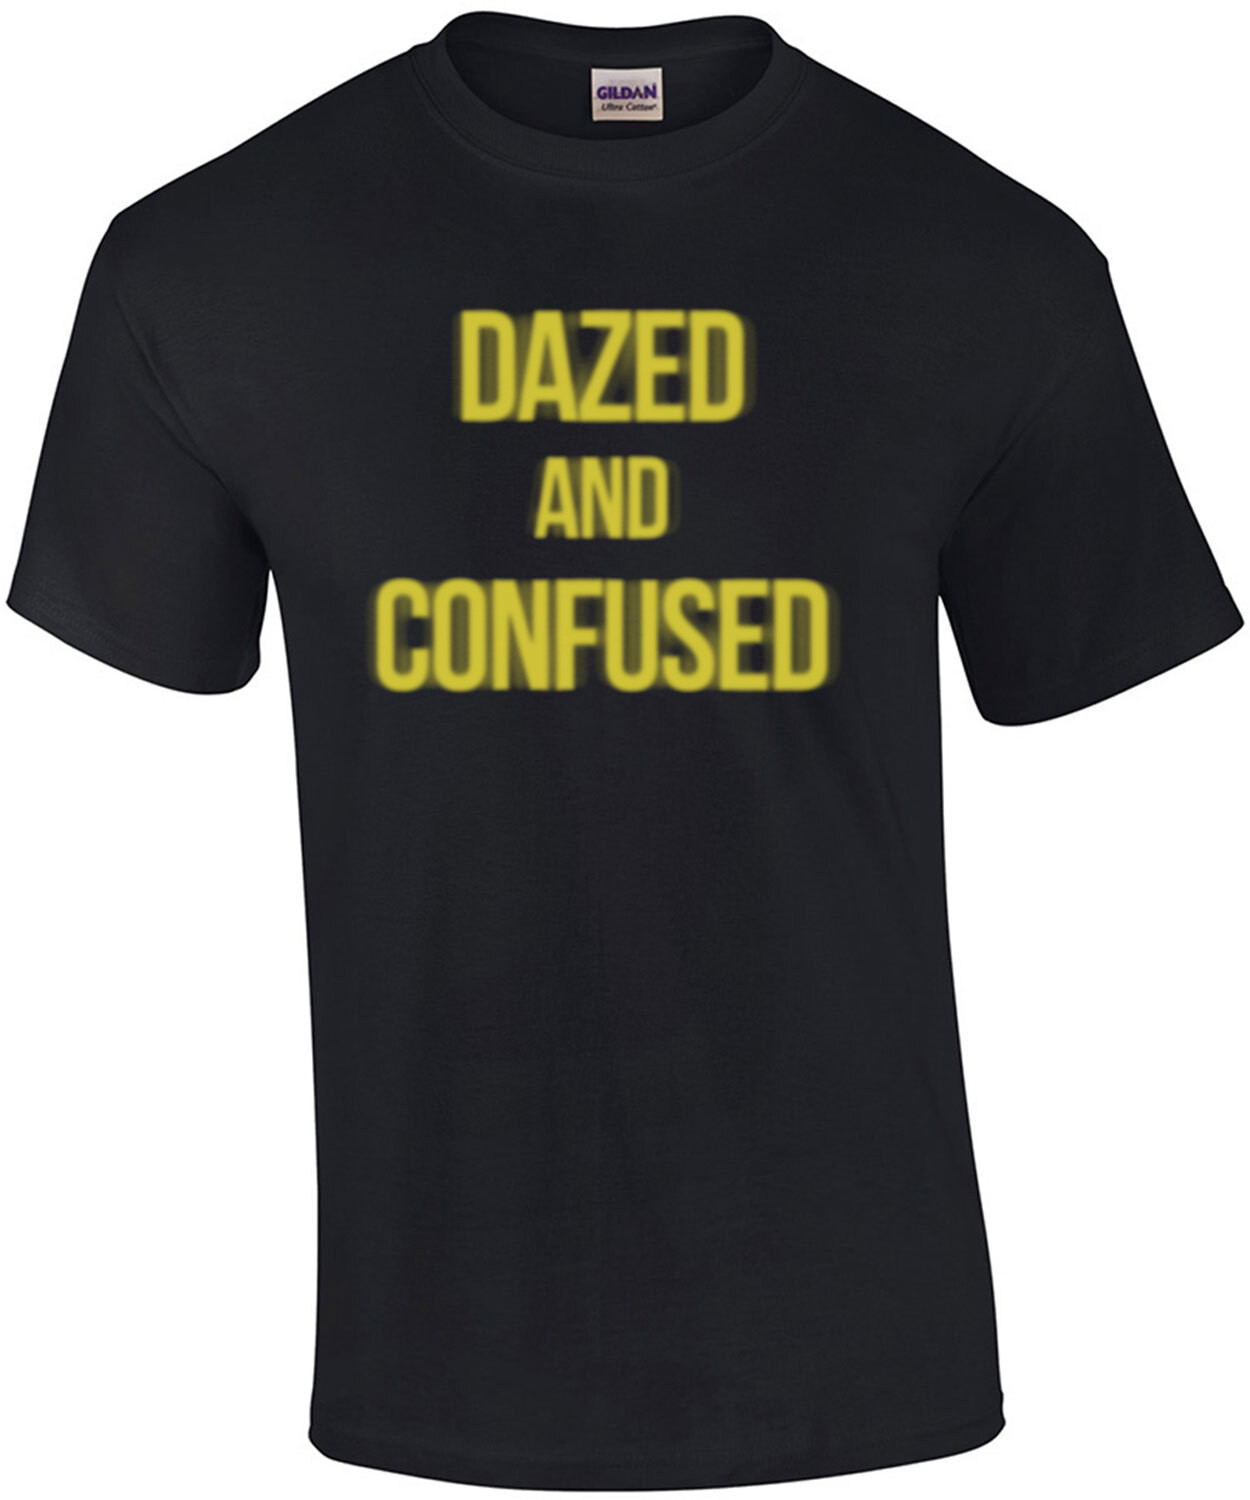 Dazed and Confused - 90's T-Shirt